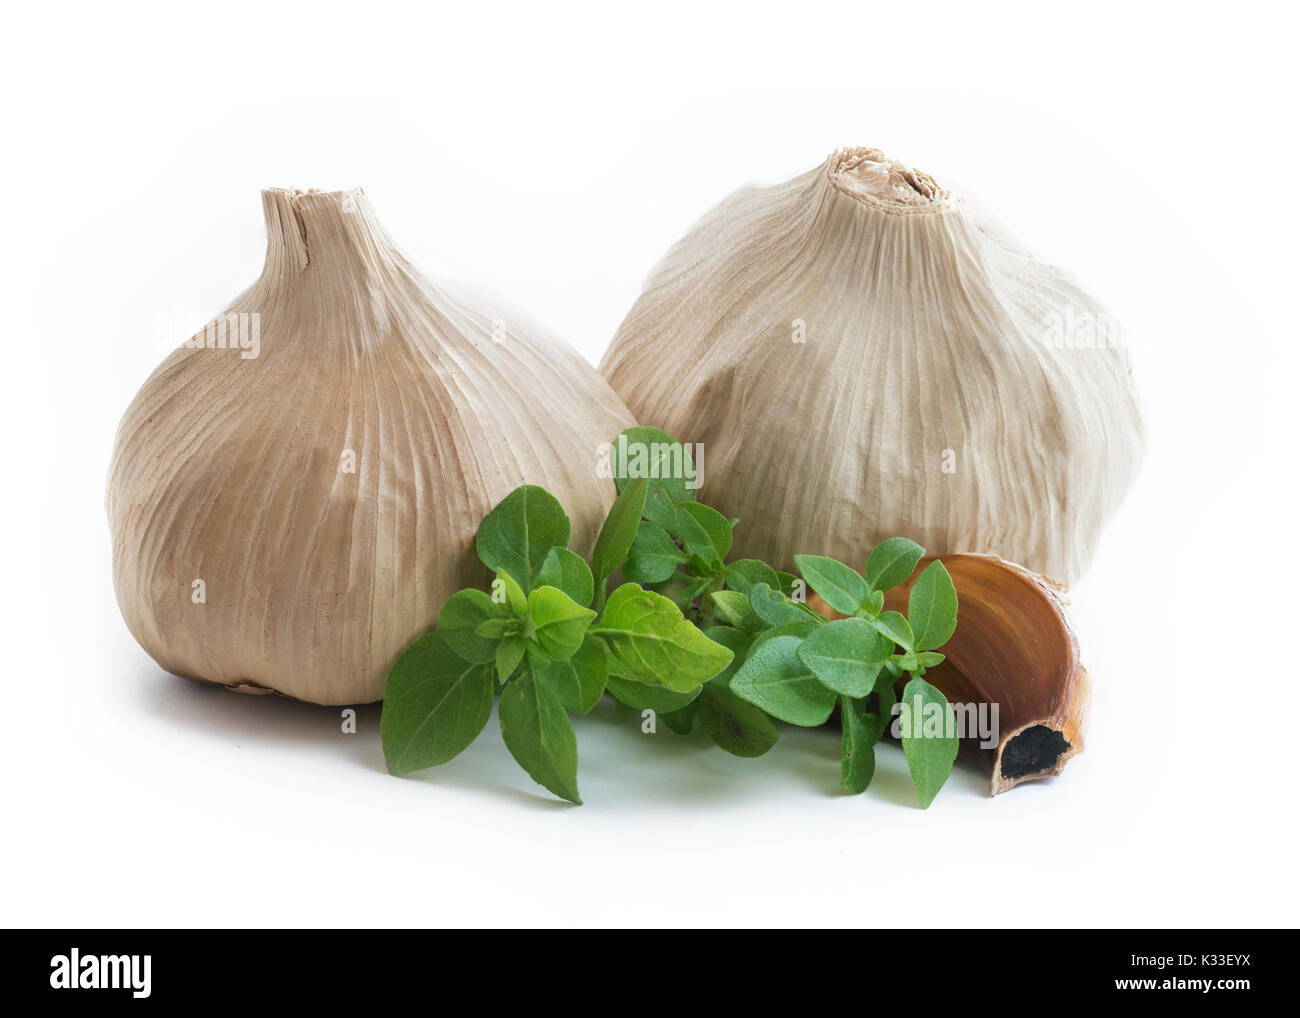 Whole bulb of home fermented  Black Garlic with cloves, latest wonder food ,rich in antioxidants, vitamins and minerals. Isolated on white background  - Stock Image